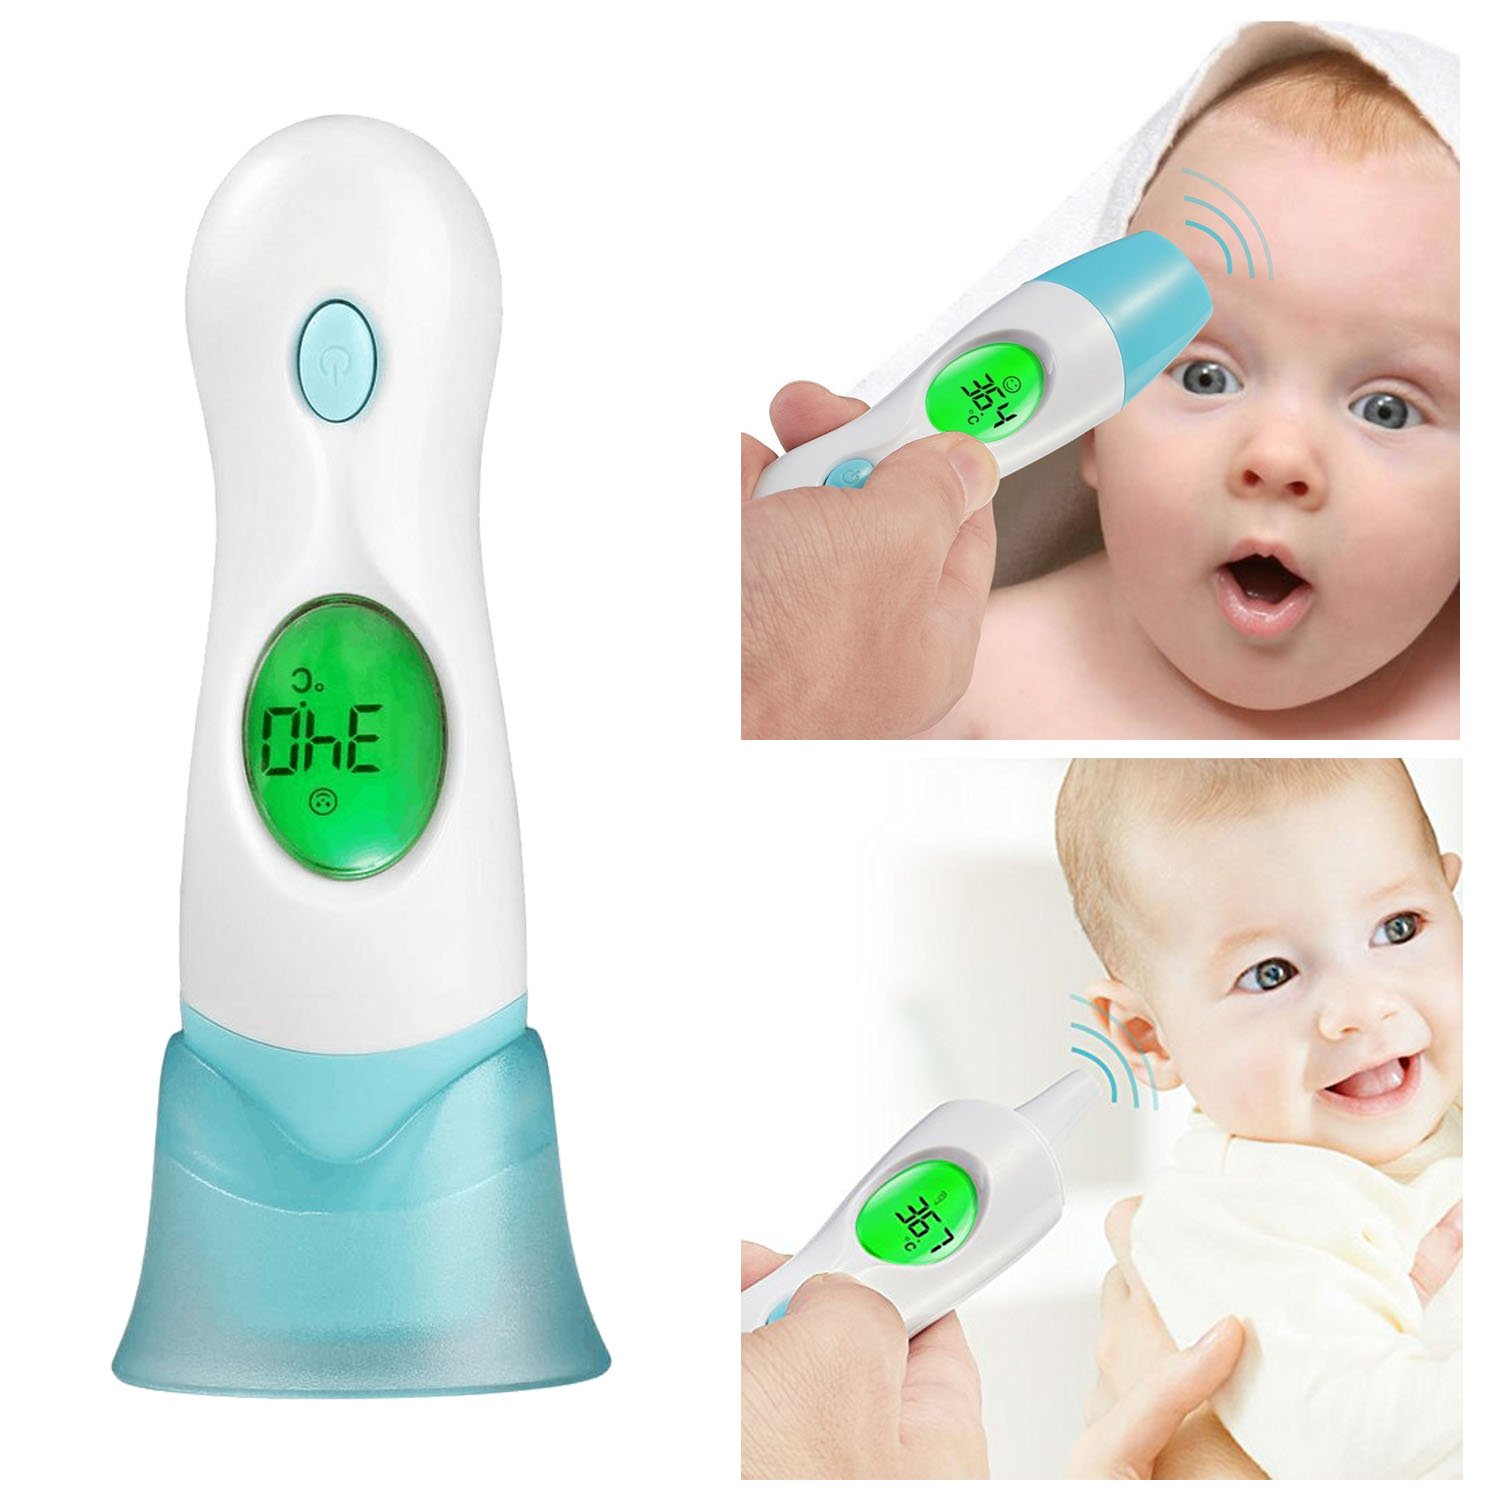 Digital Ear Forehead Thermometer for Baby, Kids, Adults No Touch Infrared Body Temperature Accurate Fever Thermom YSL